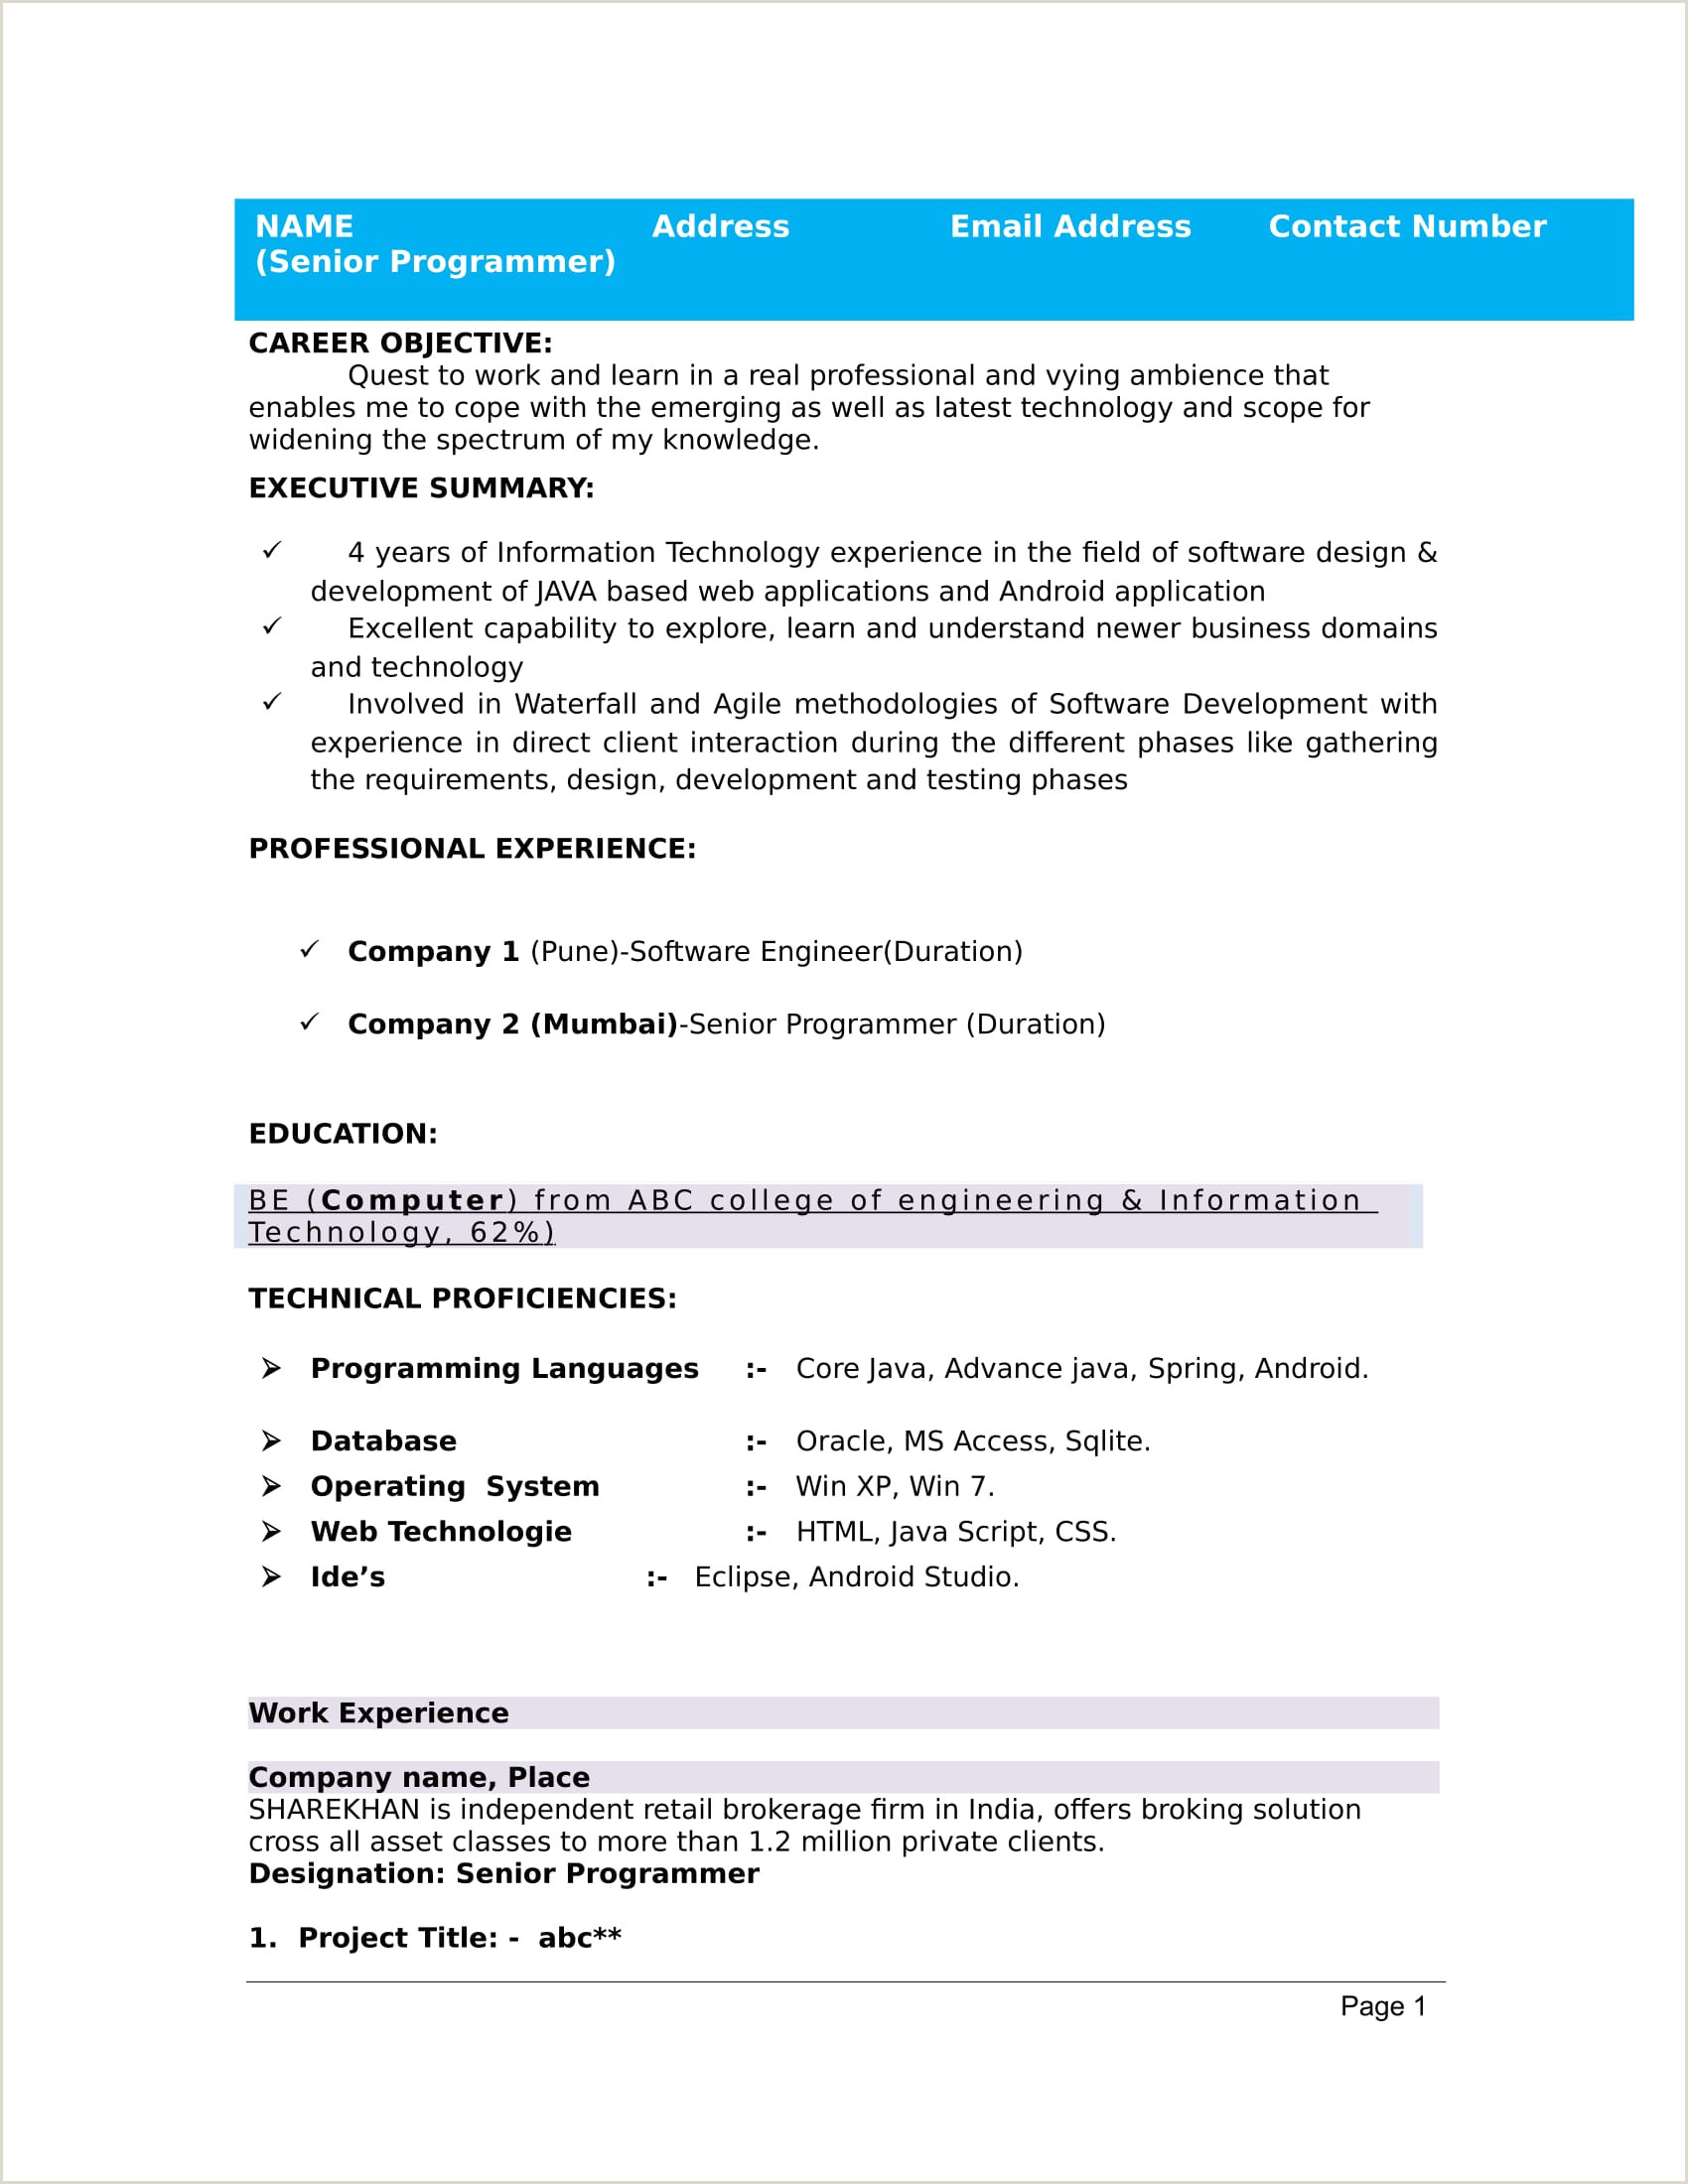 Blank Resume format Download In Ms Word for Fresher 32 Resume Templates for Freshers Download Free Word format